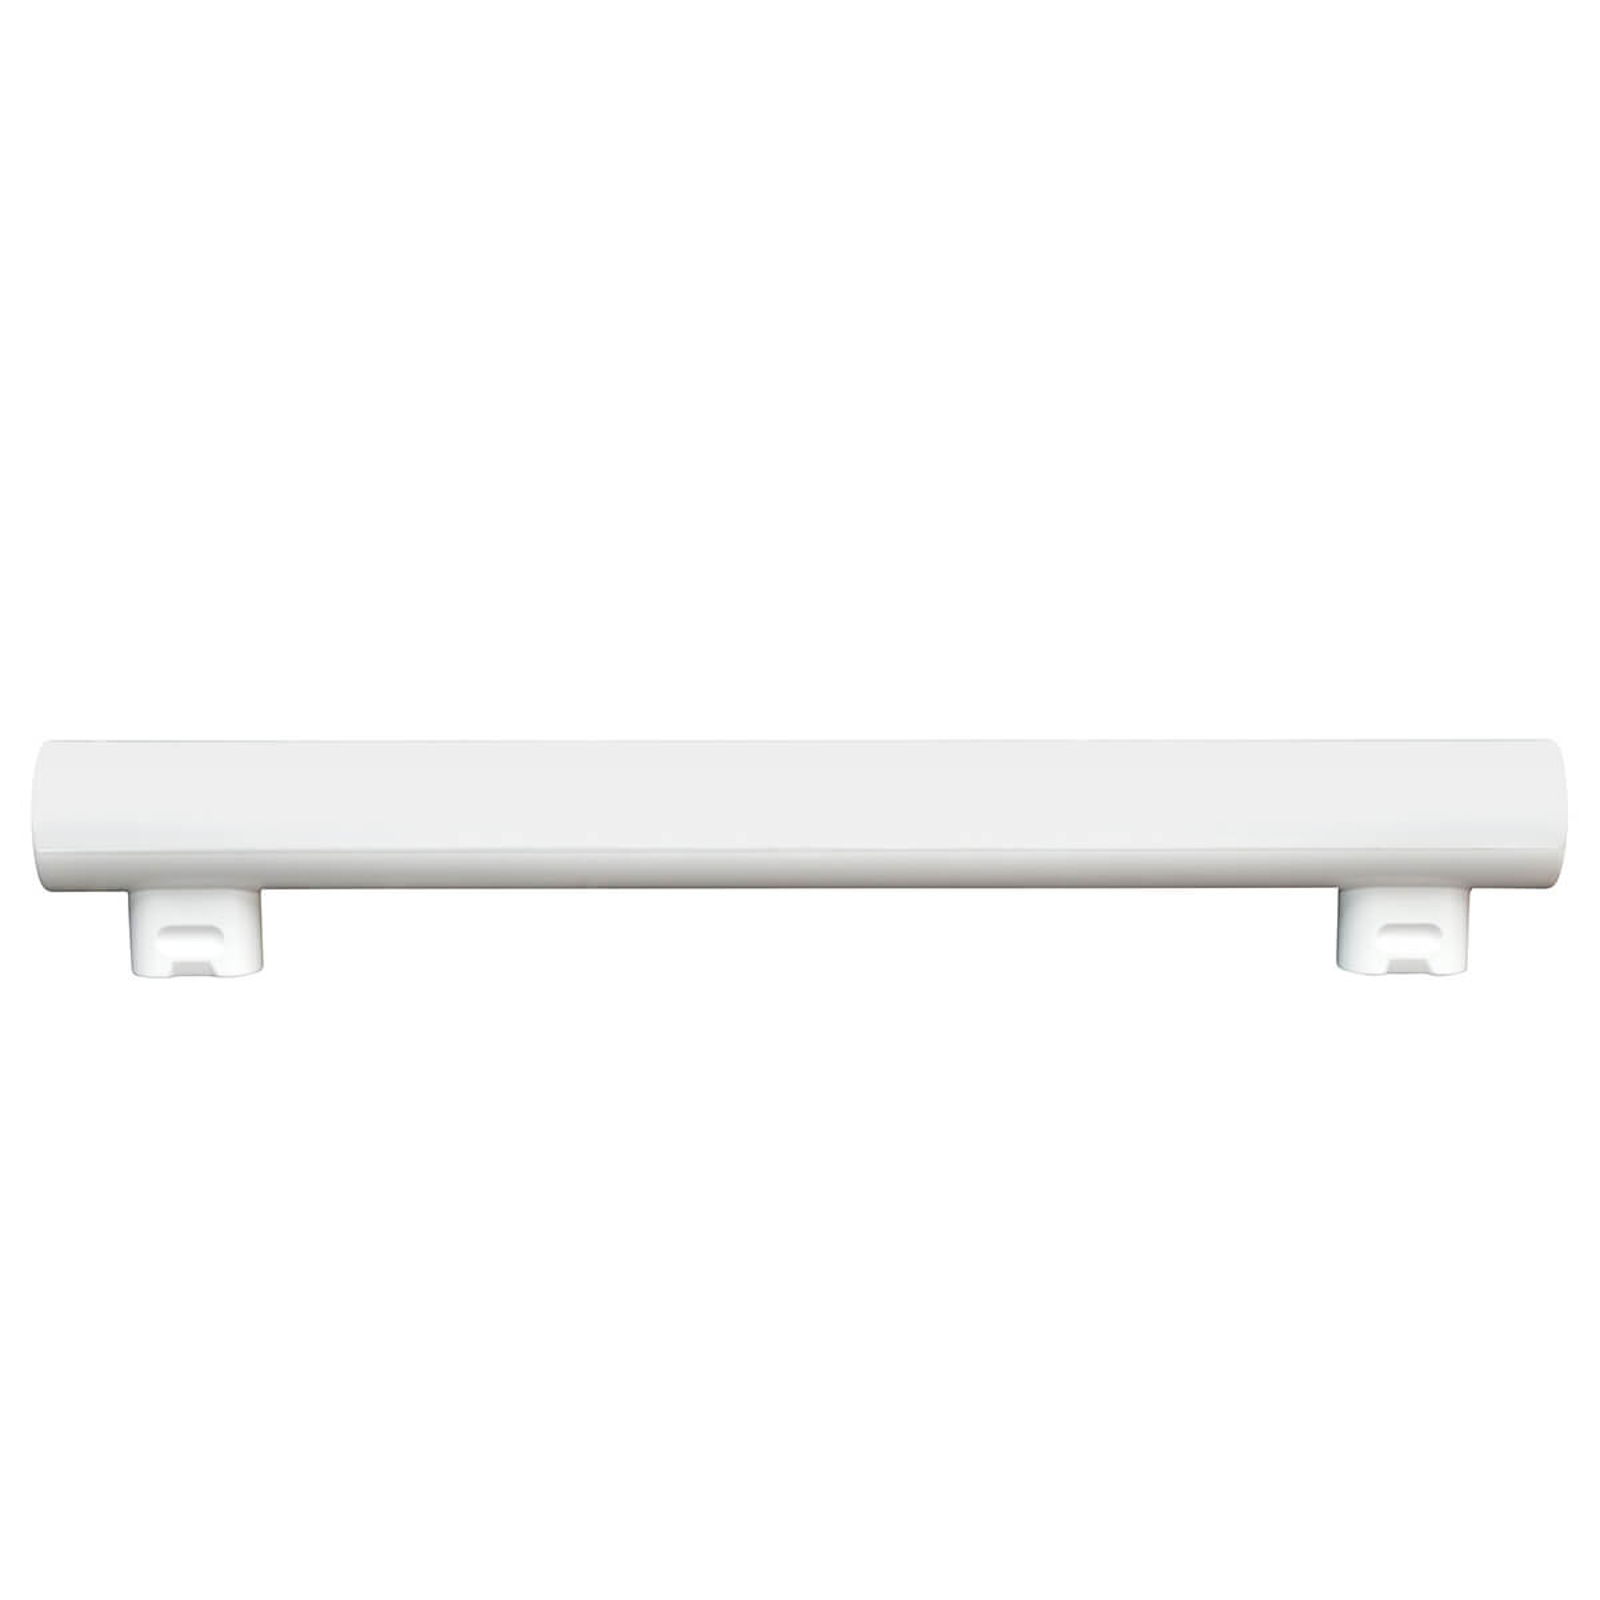 S14s 5W 927 LED-Linienlampe 300 mm